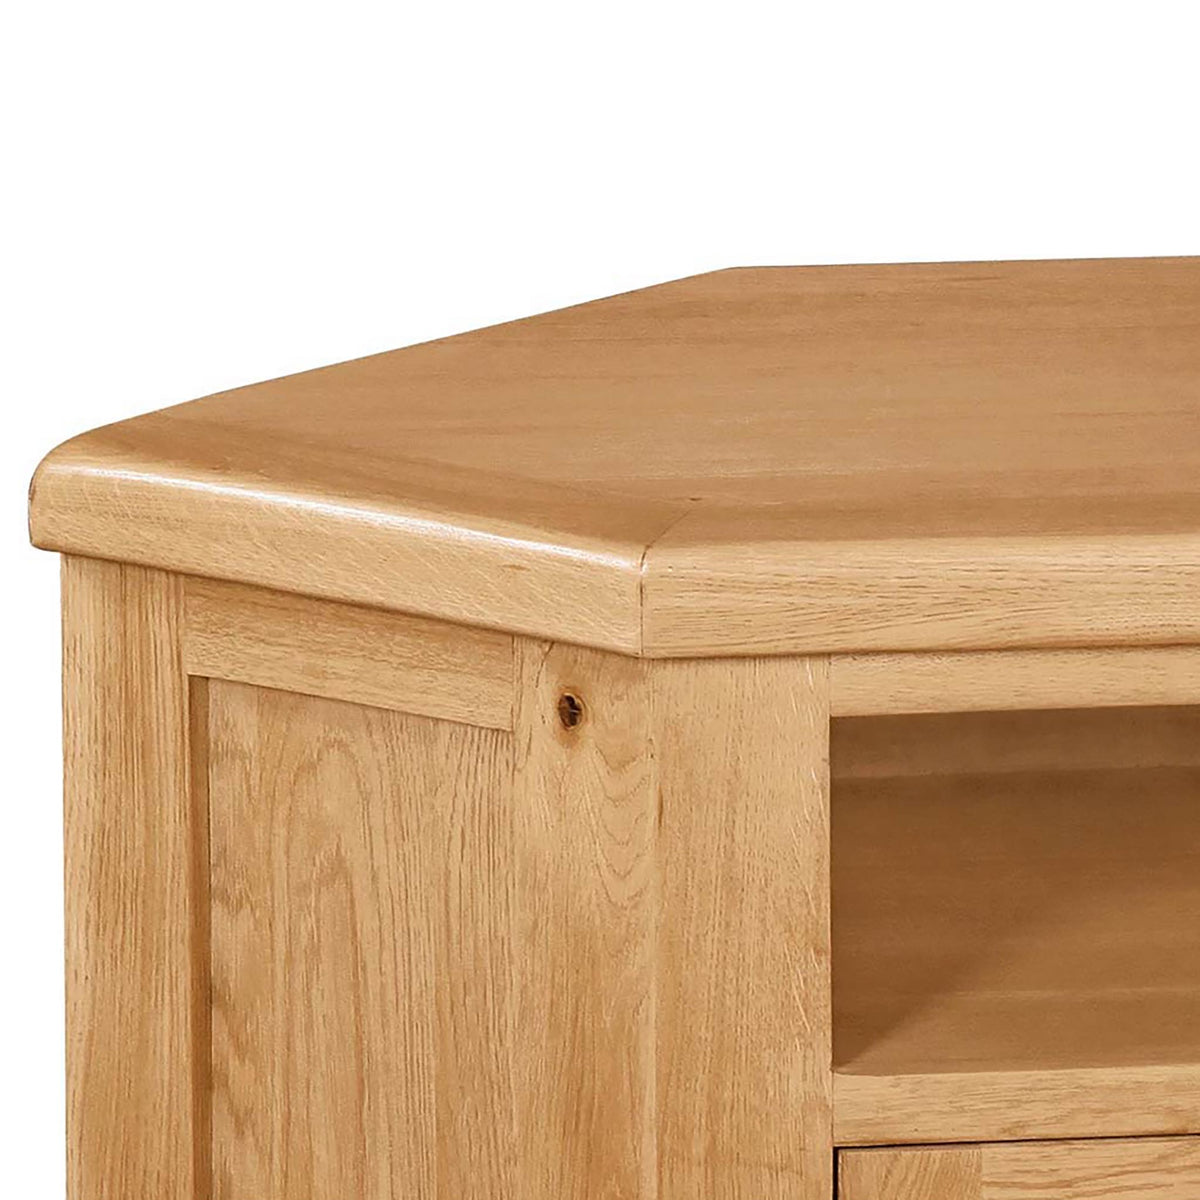 Sidmouth Oak Corner TV Stand - Close Up of Oak Top of Stand